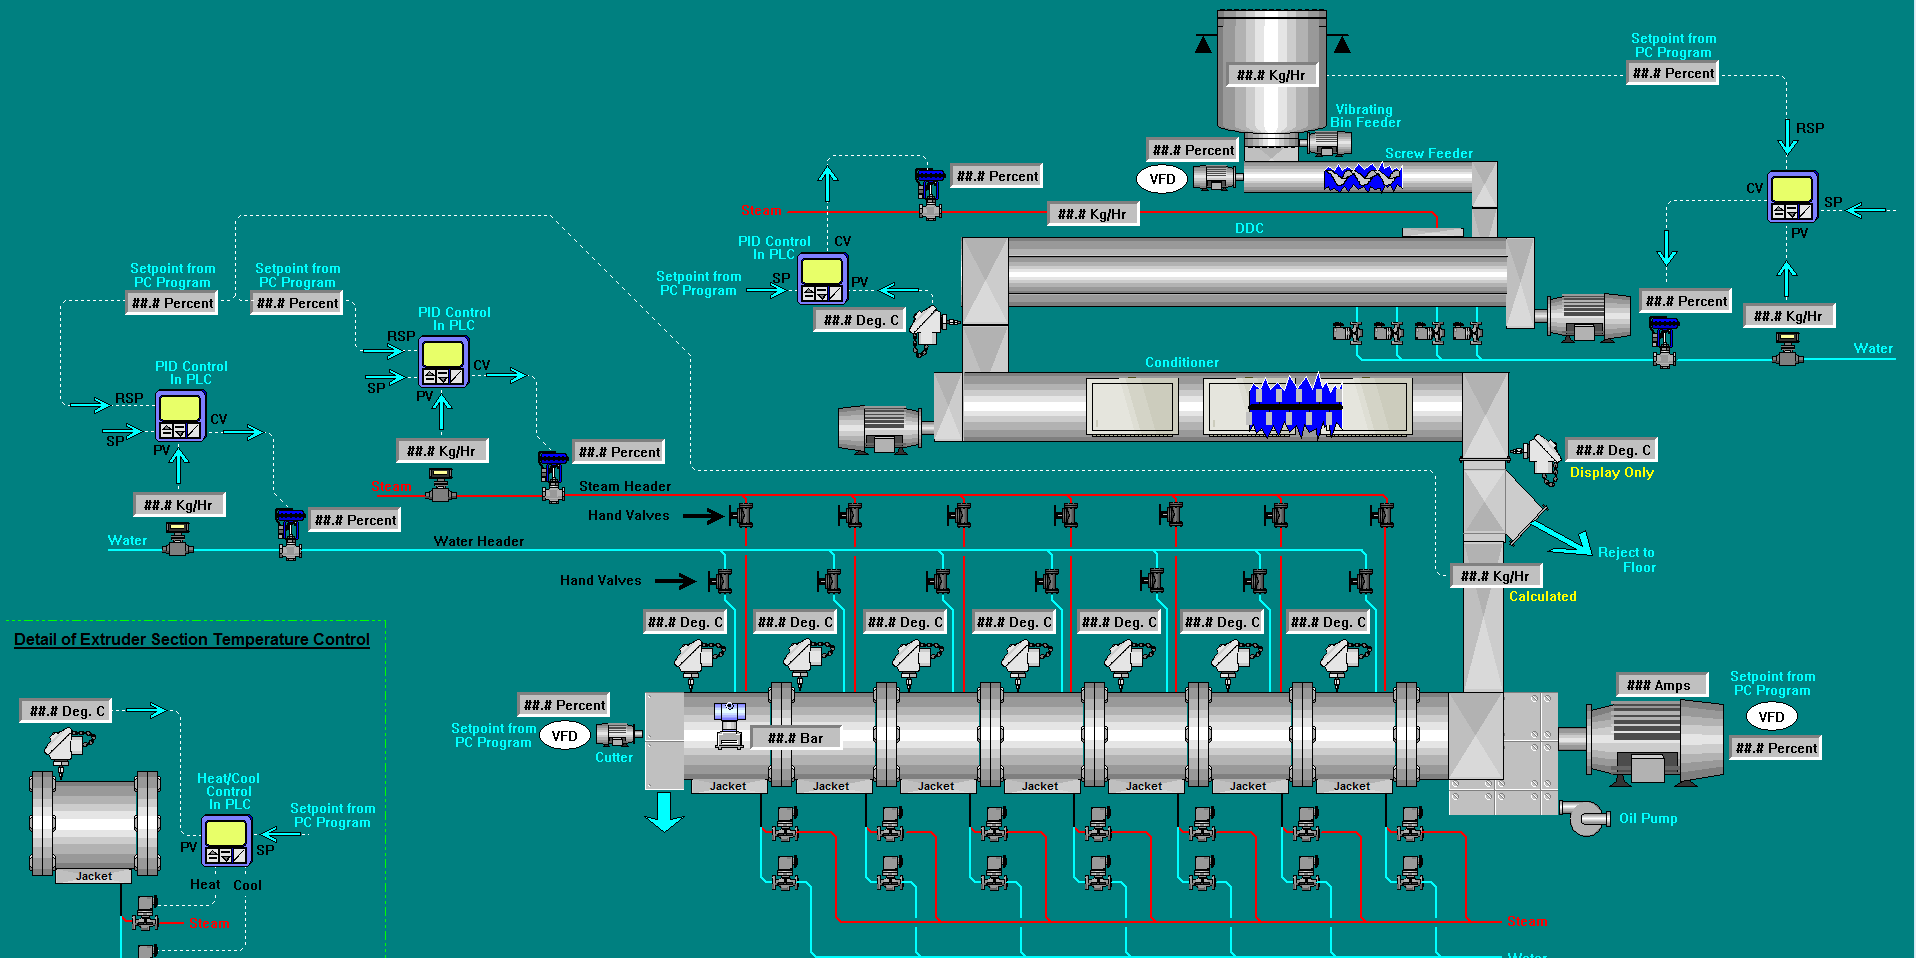 WEM Screenshot - Aquafeed Extrusion Control 1